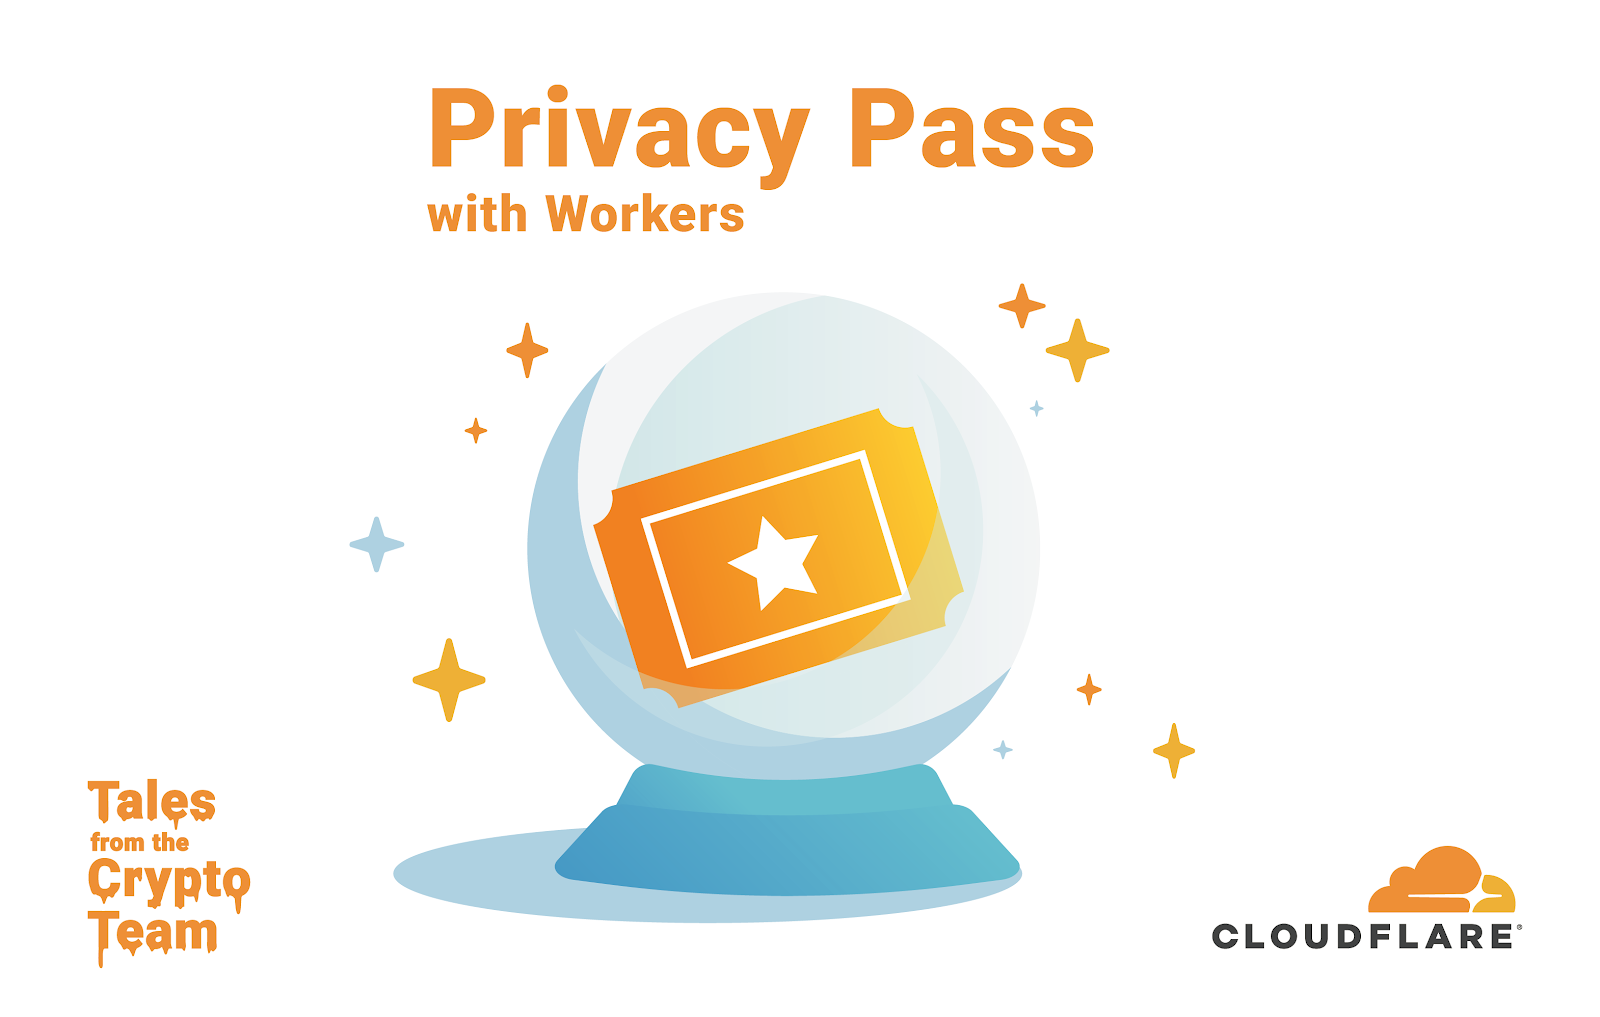 Supporting the latest version of the Privacy Pass Protocol